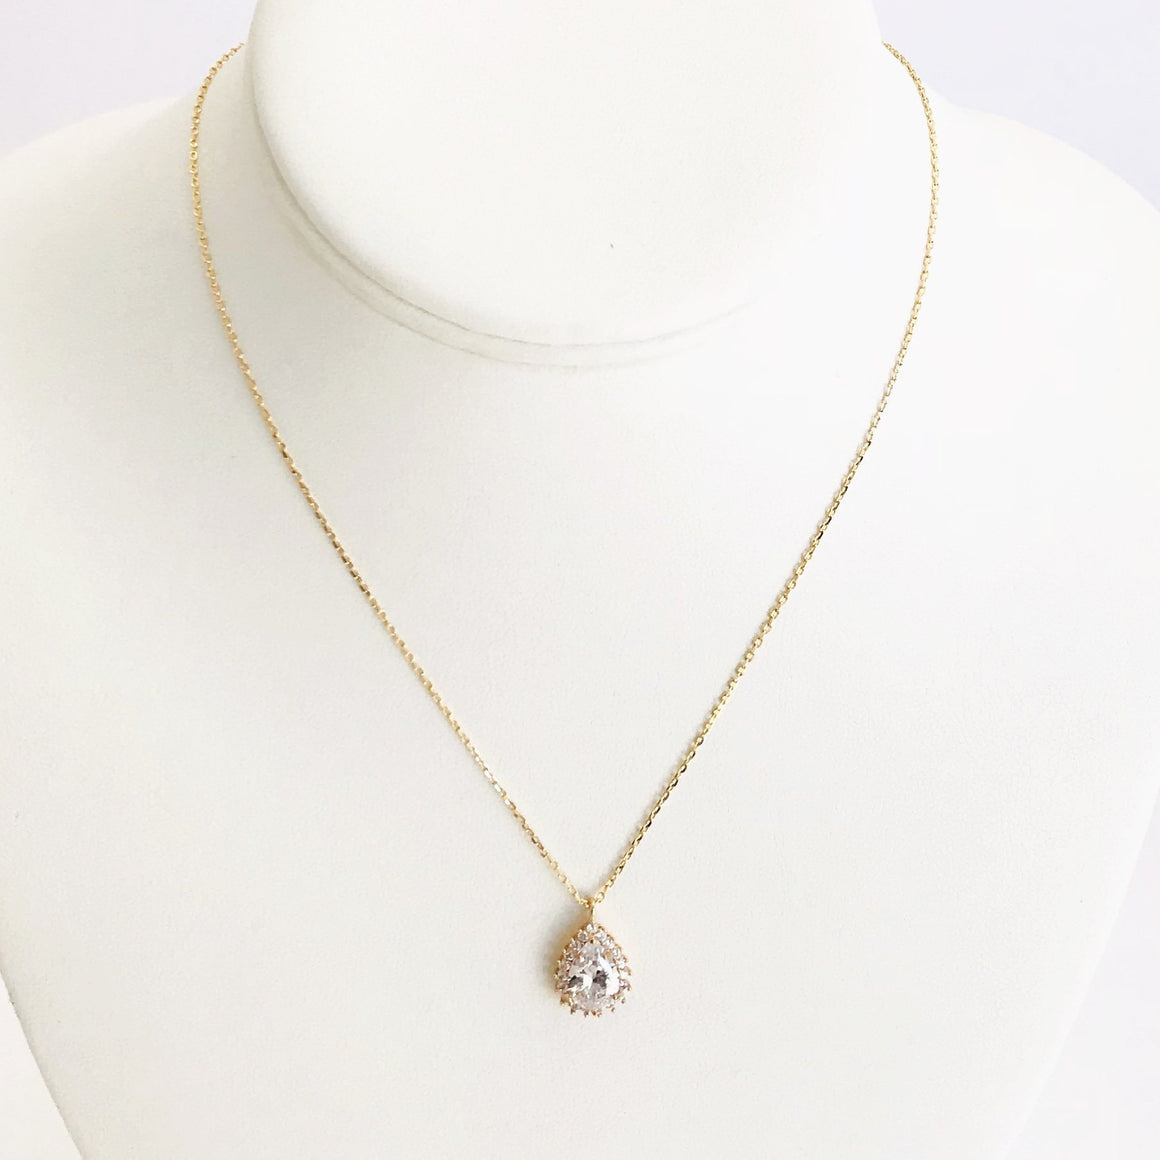 Brighter Than You Diamond Necklace